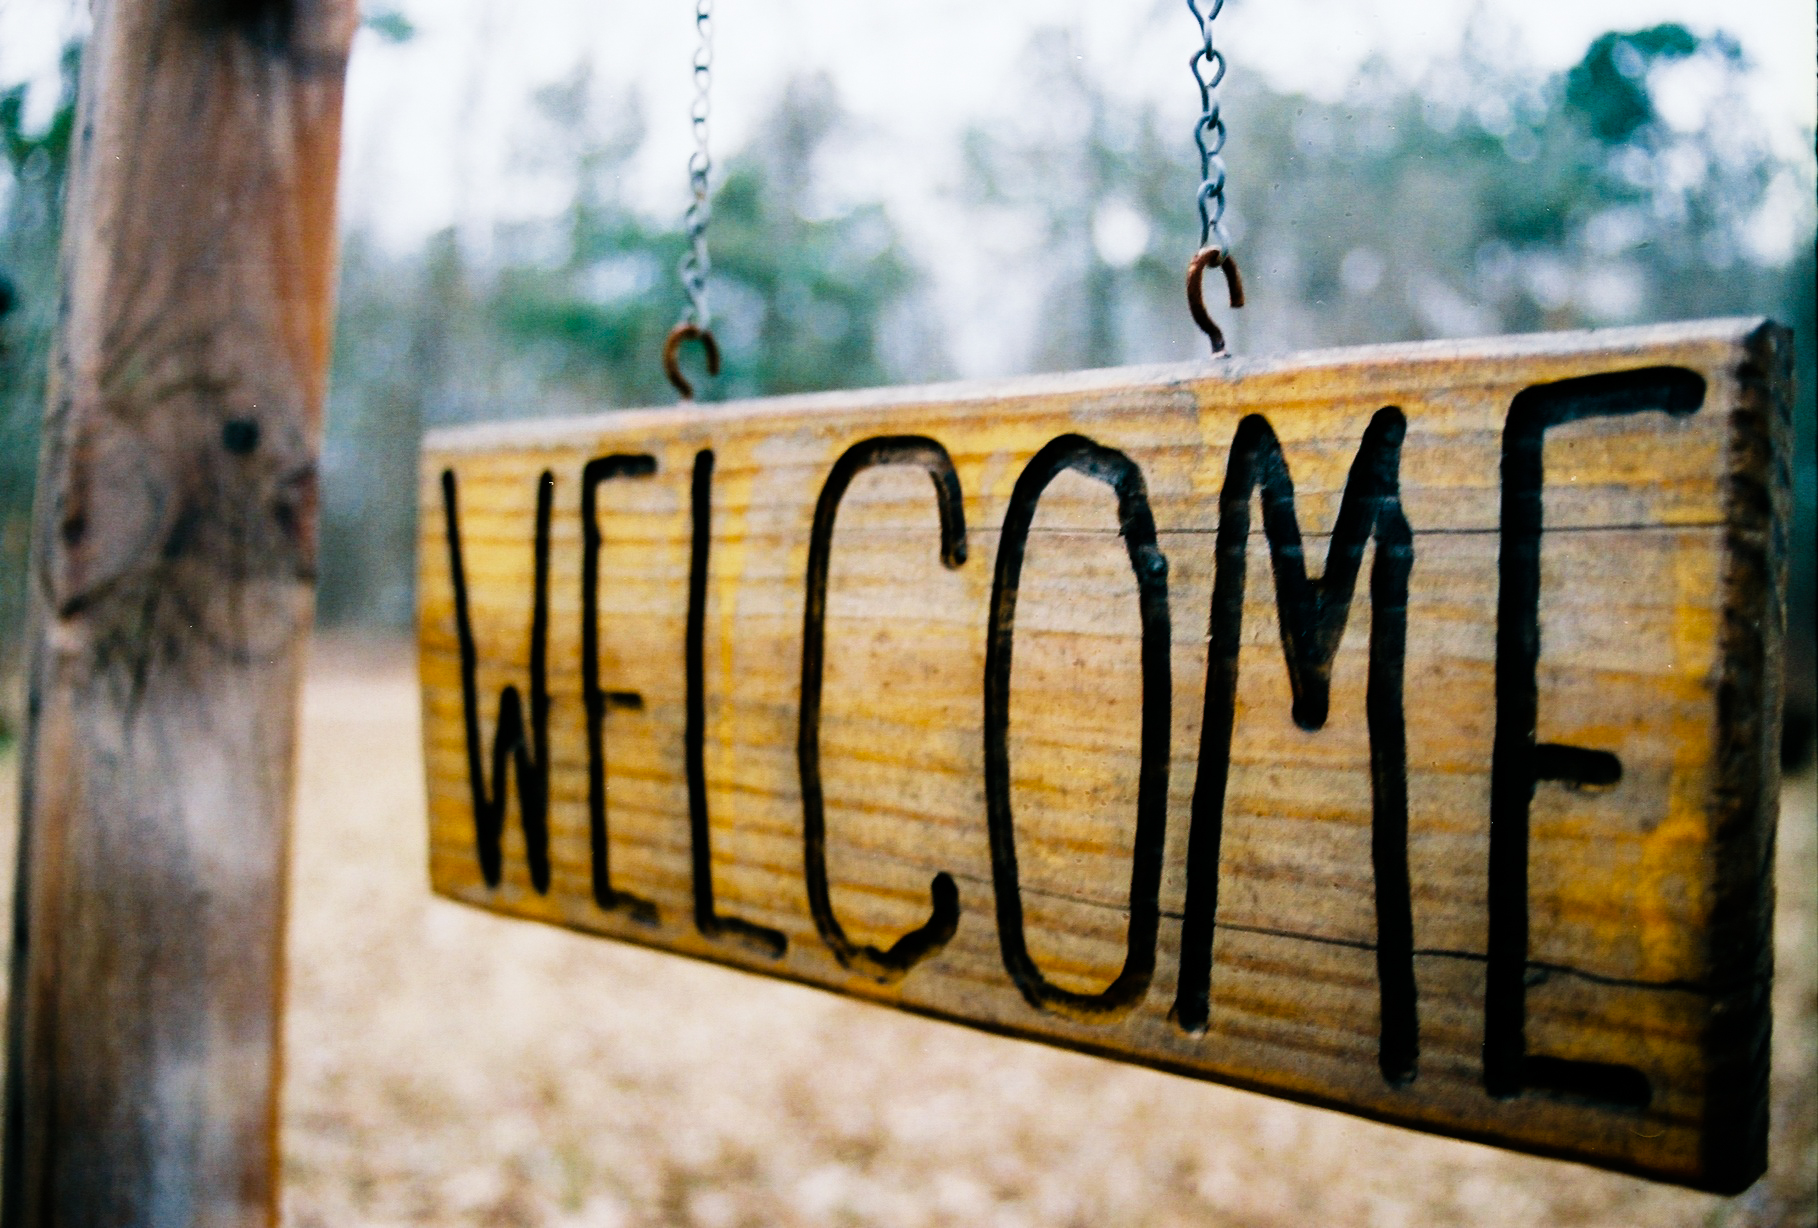 """Welcome"""" by Nathan is licensed under CC BY 2.0"